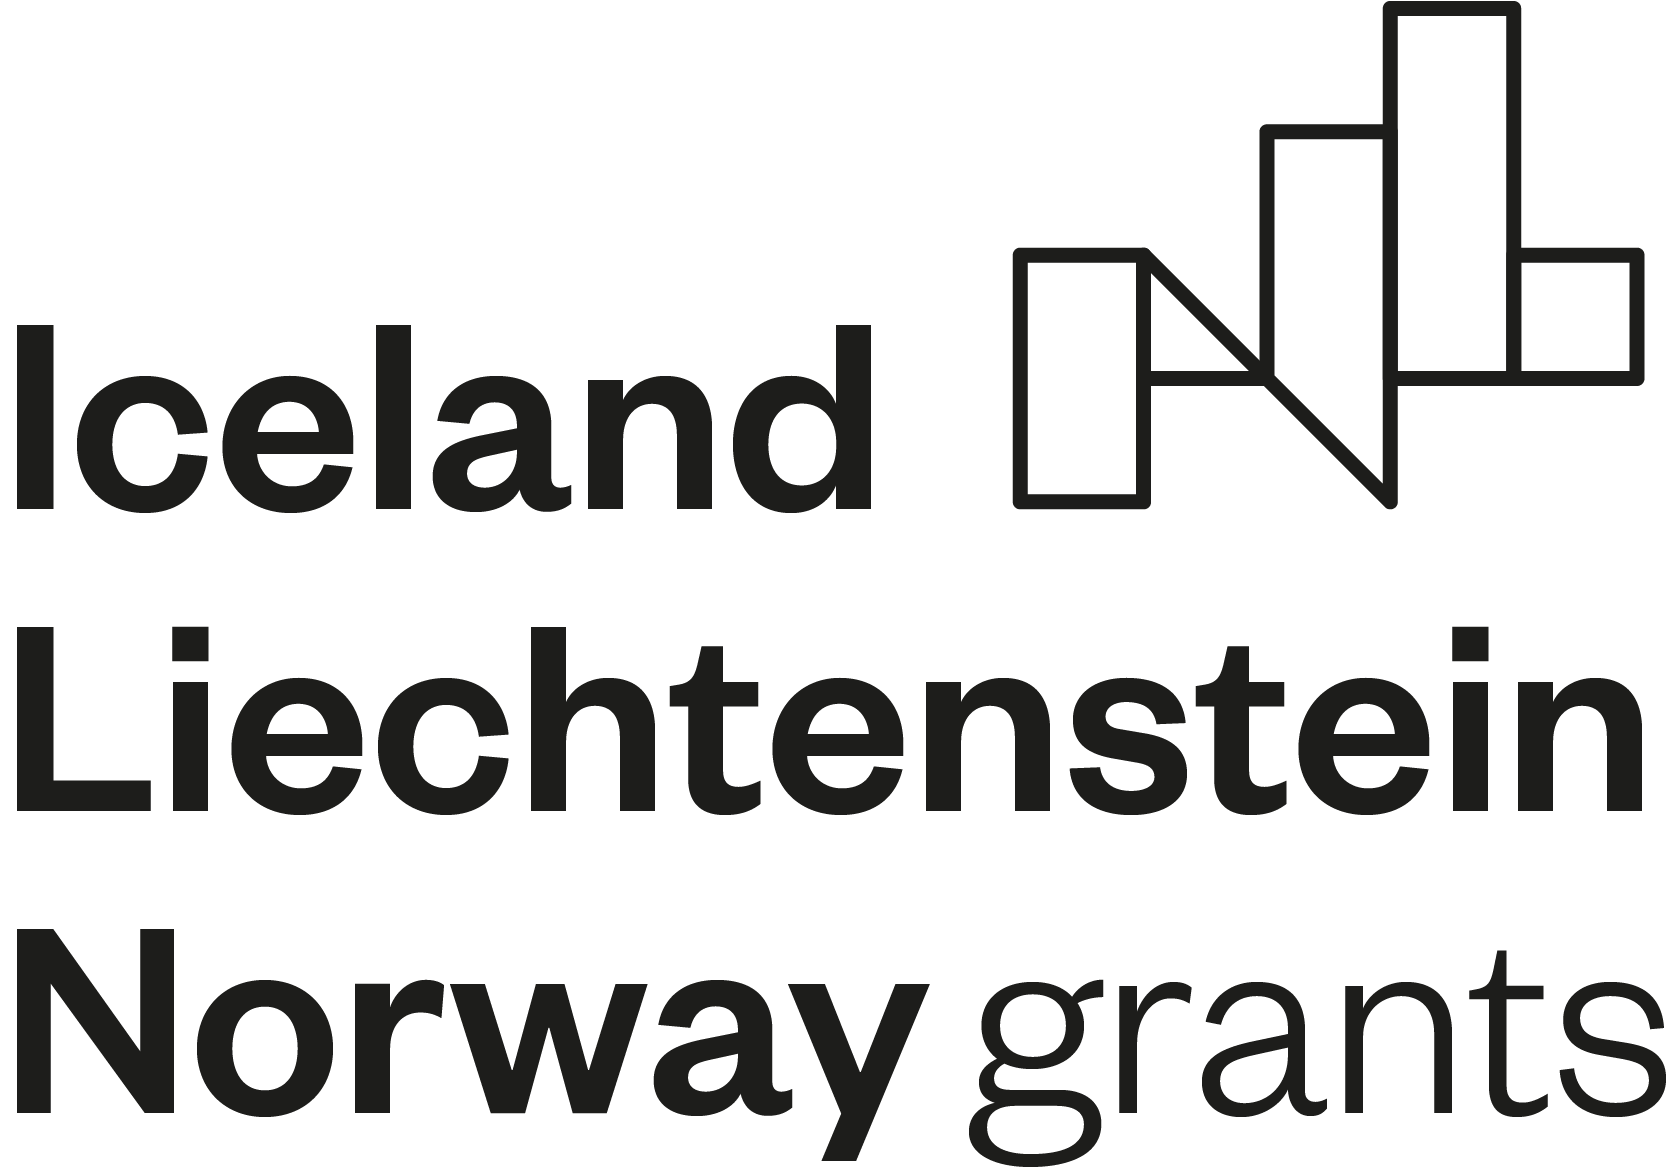 Logo Island, Lichtenstein, Norway Grants